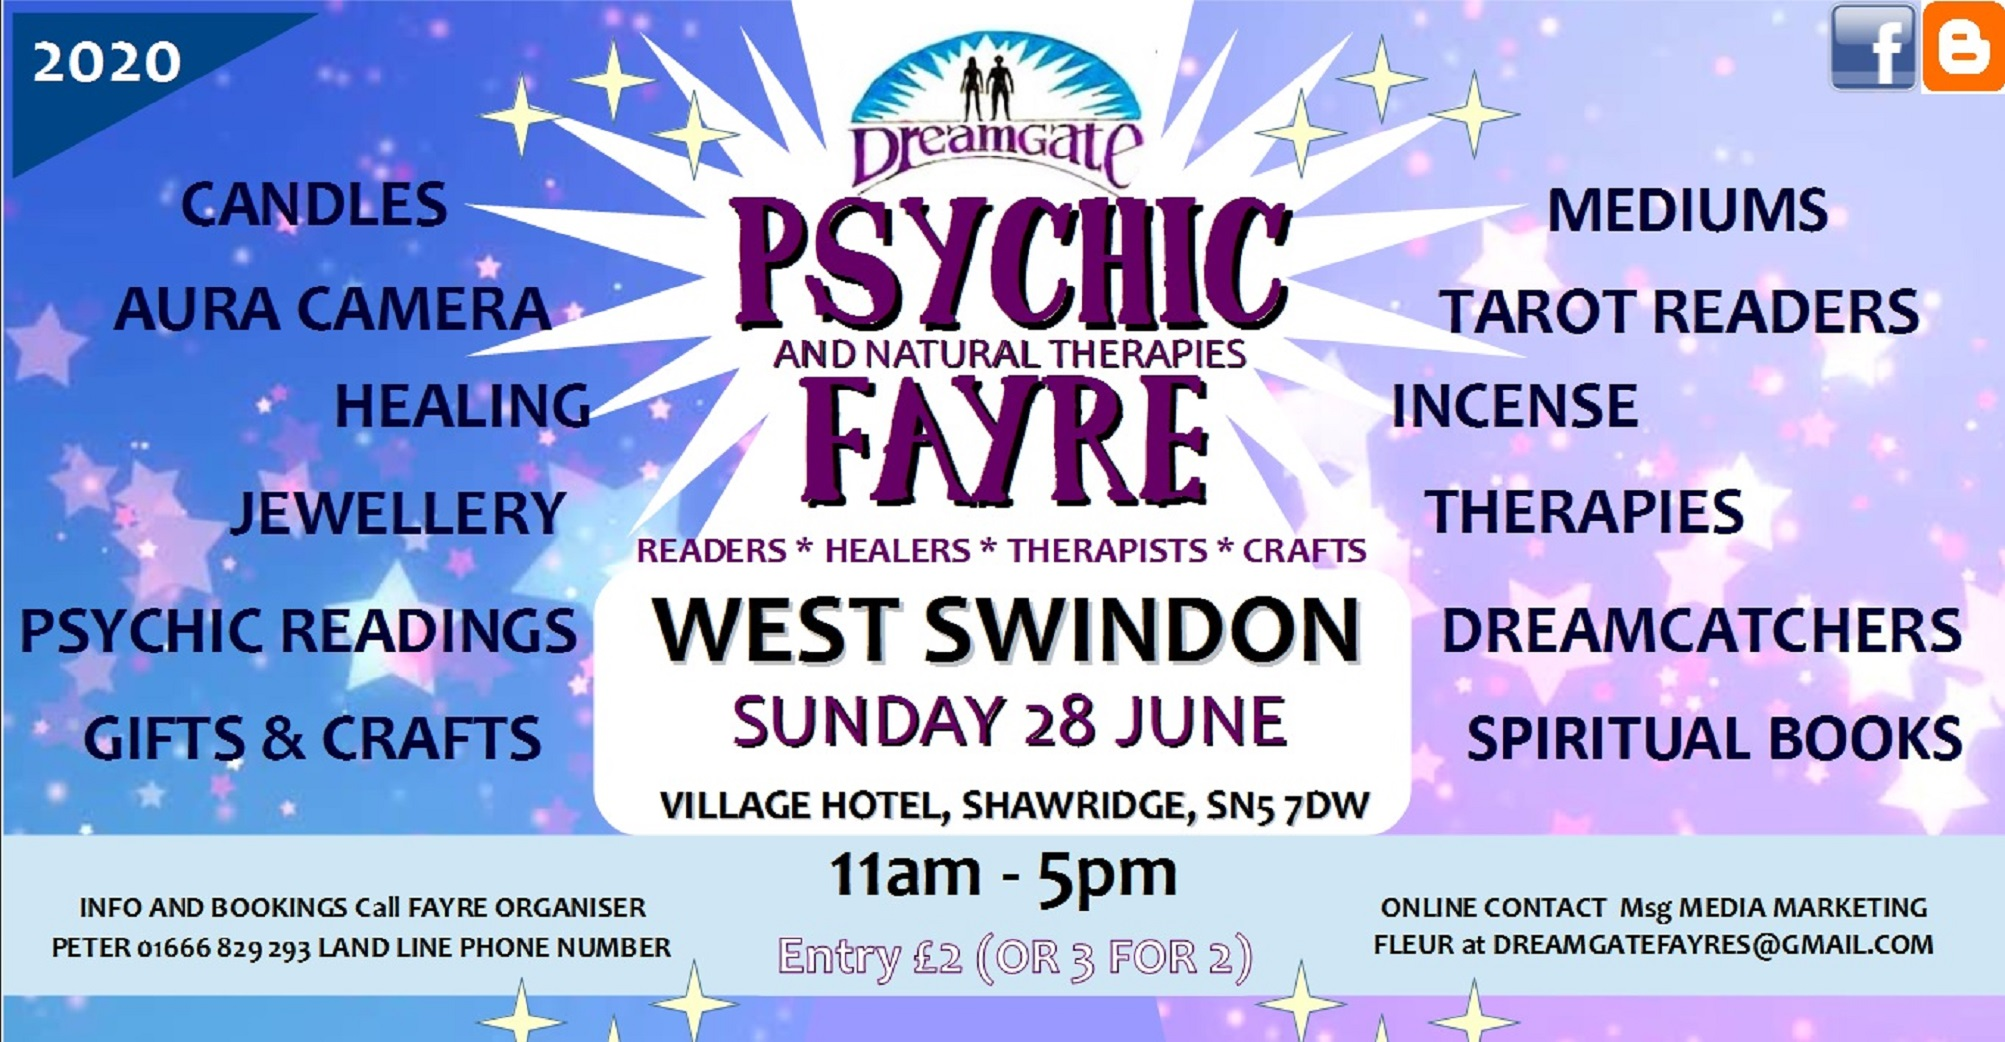 DreamGate Psychic Fayre